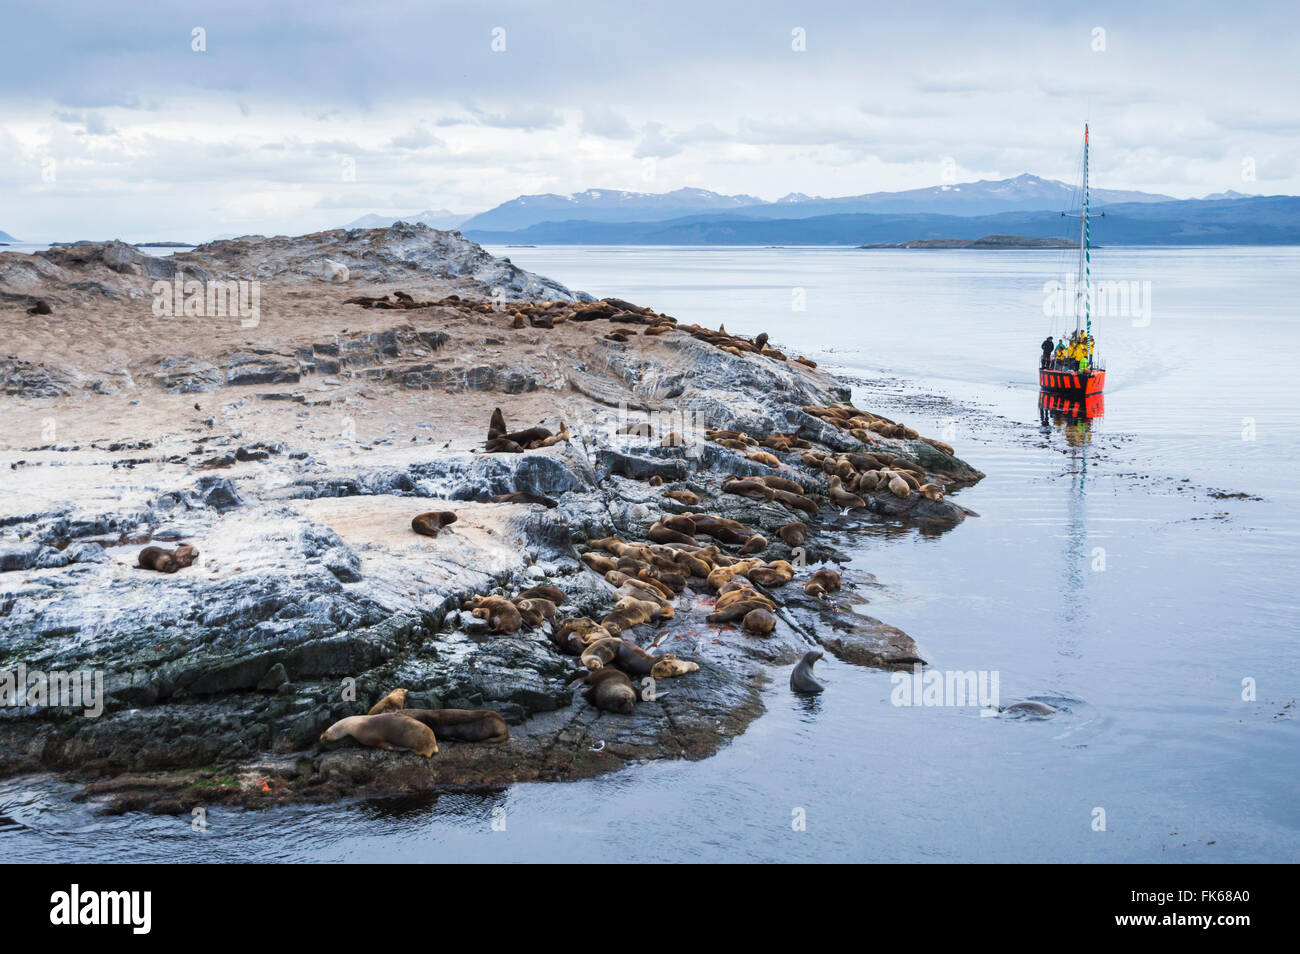 Beagle Channel sailing boat observing Sea Lion colony, Ushuaia, Tierra Del Fuego, Patagonia, Argentina, South America - Stock Image